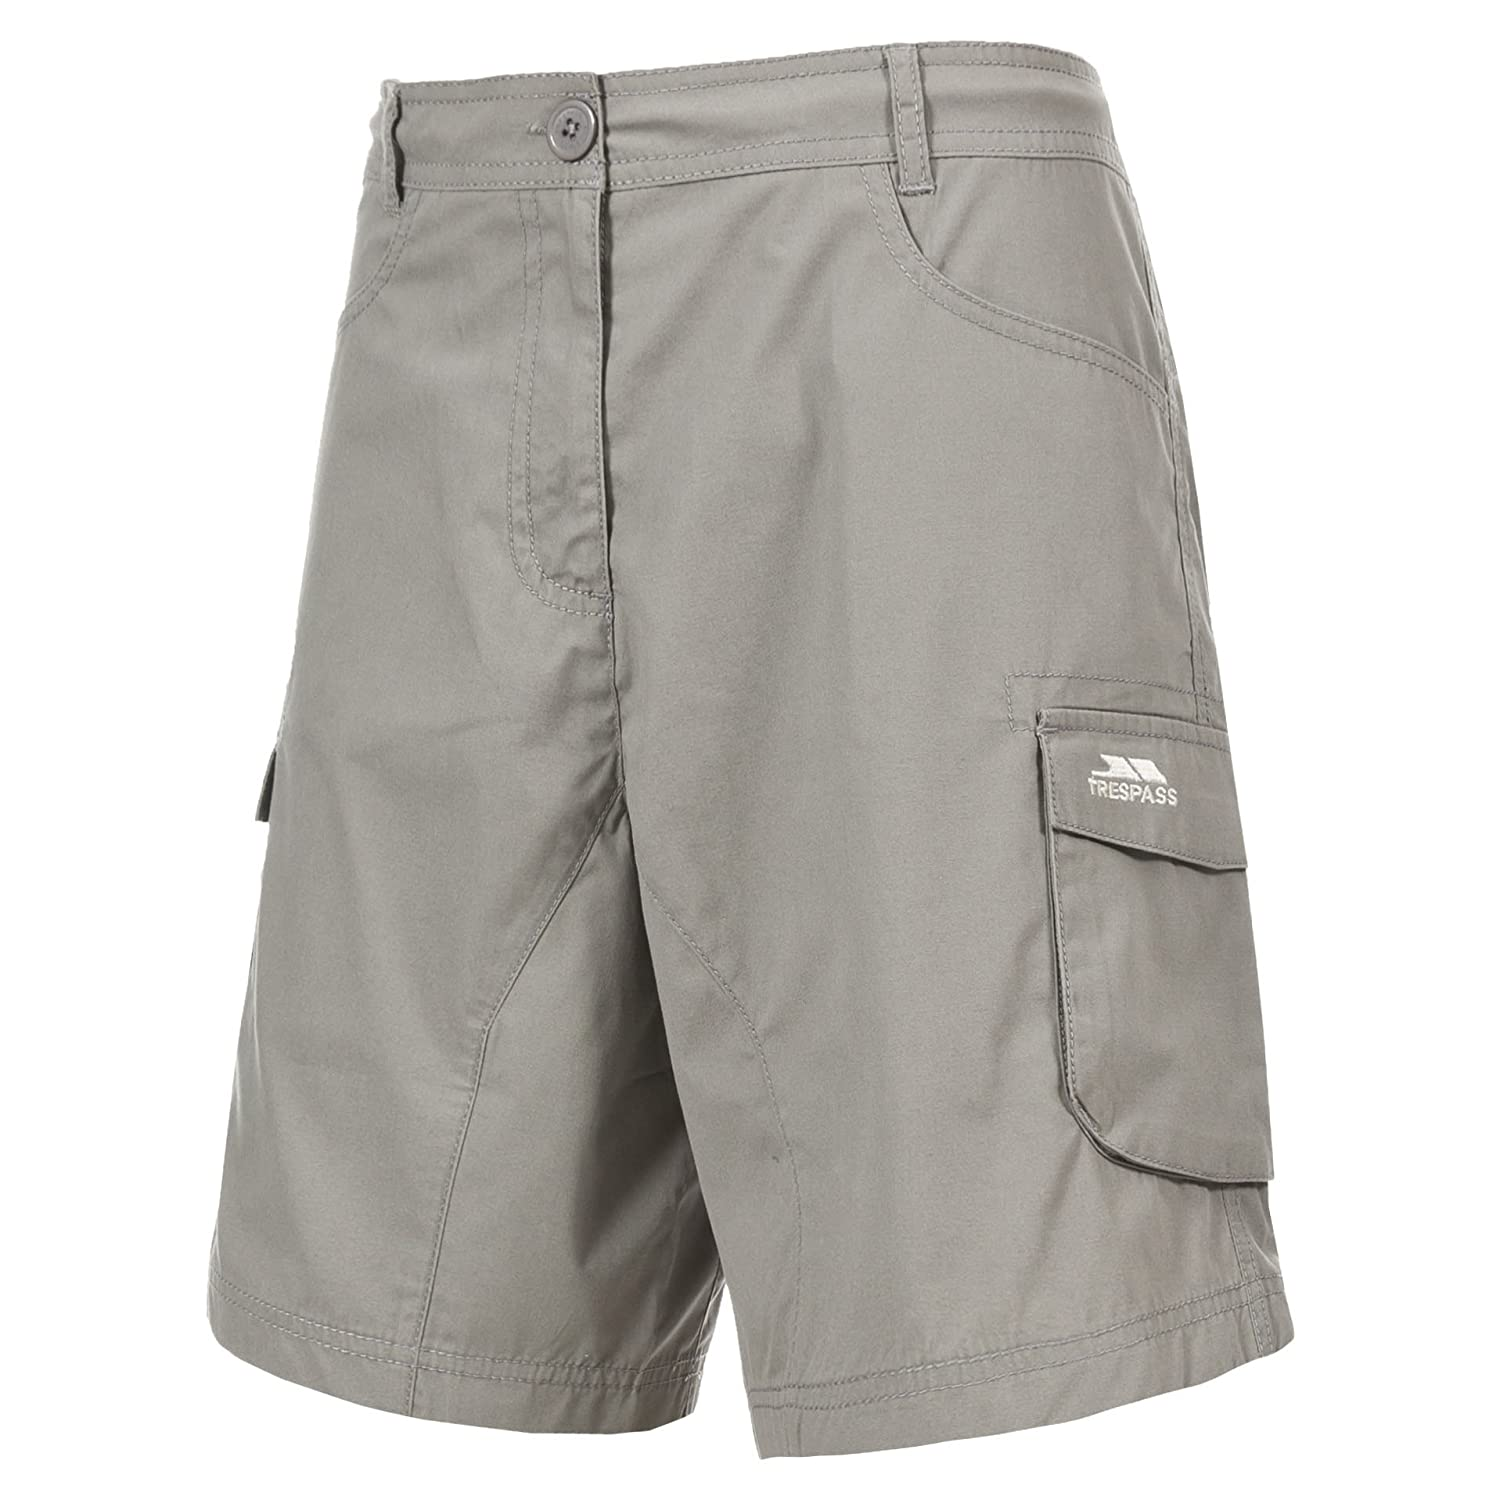 Trespass Womens/Ladies Nova Travel Shorts